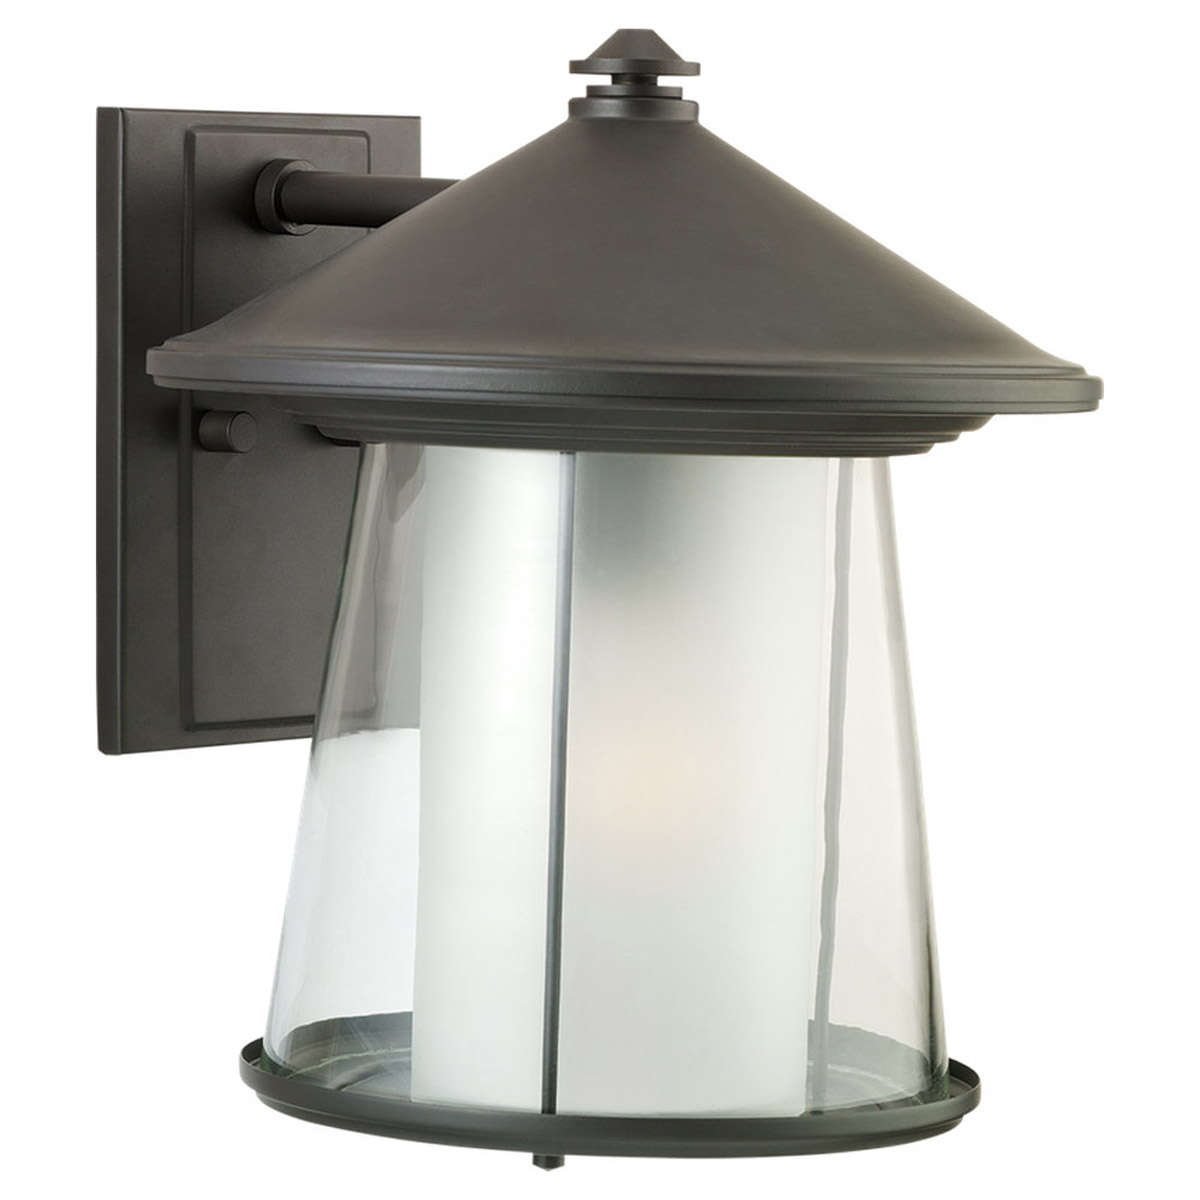 Sea Gull Lighting Strathmore 1 Light Outdoor Wall Lantern in Cottage Bronze 88321-833